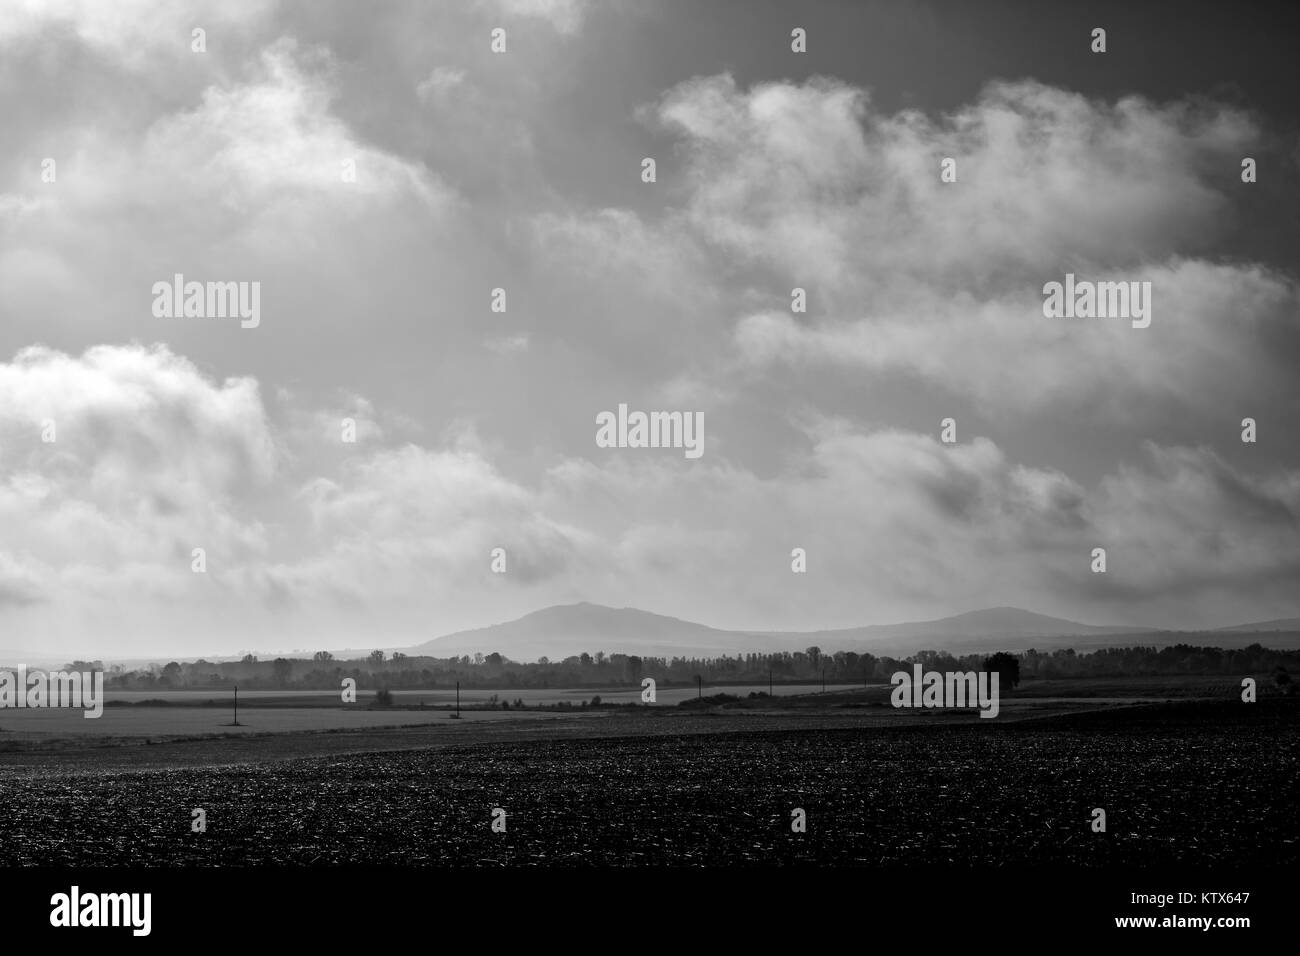 Cloudy autumn morning dark black and white landscape - Stock Image